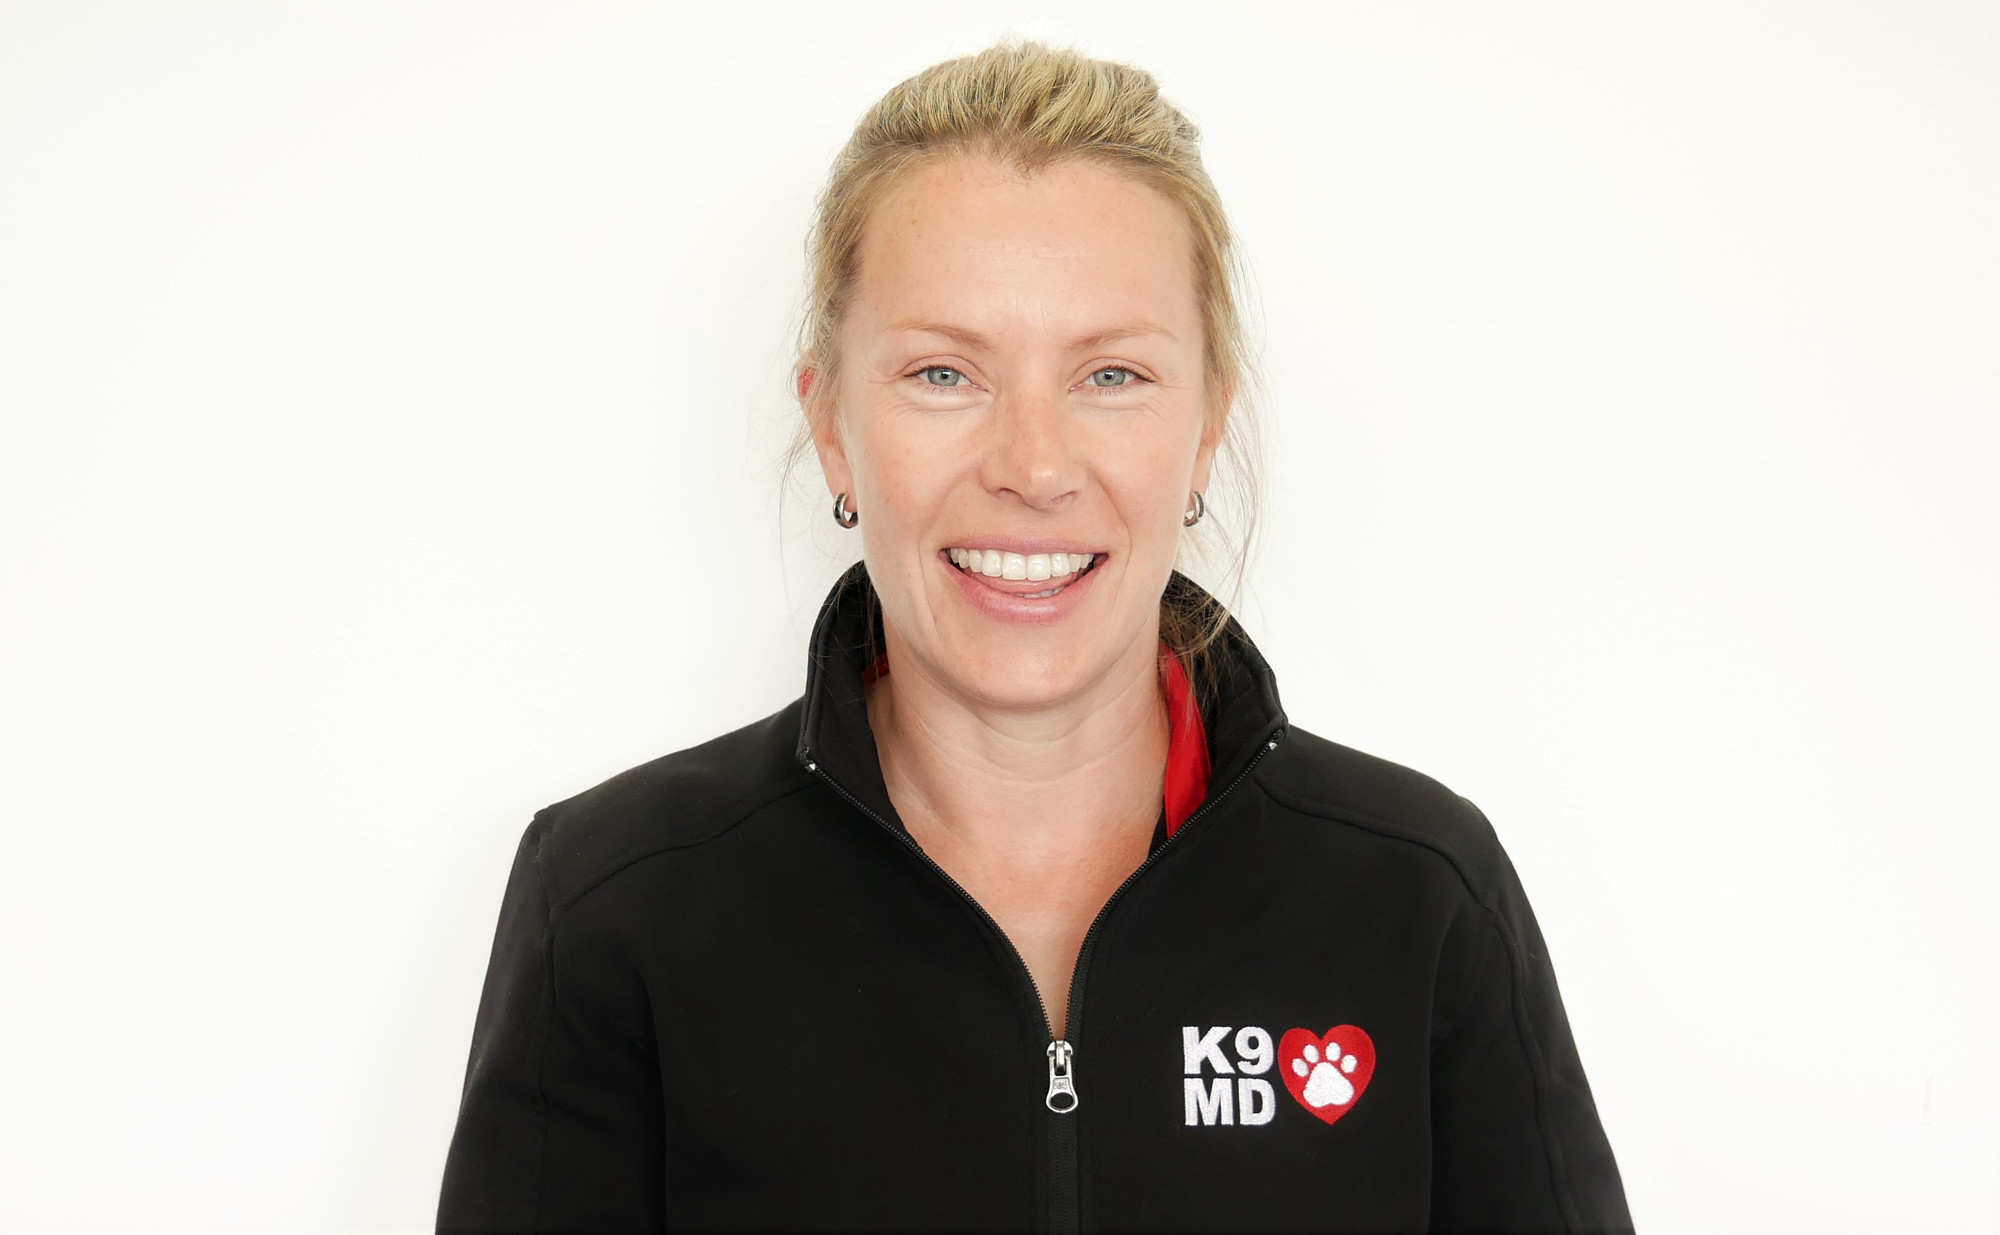 Courtney Moore K9MD